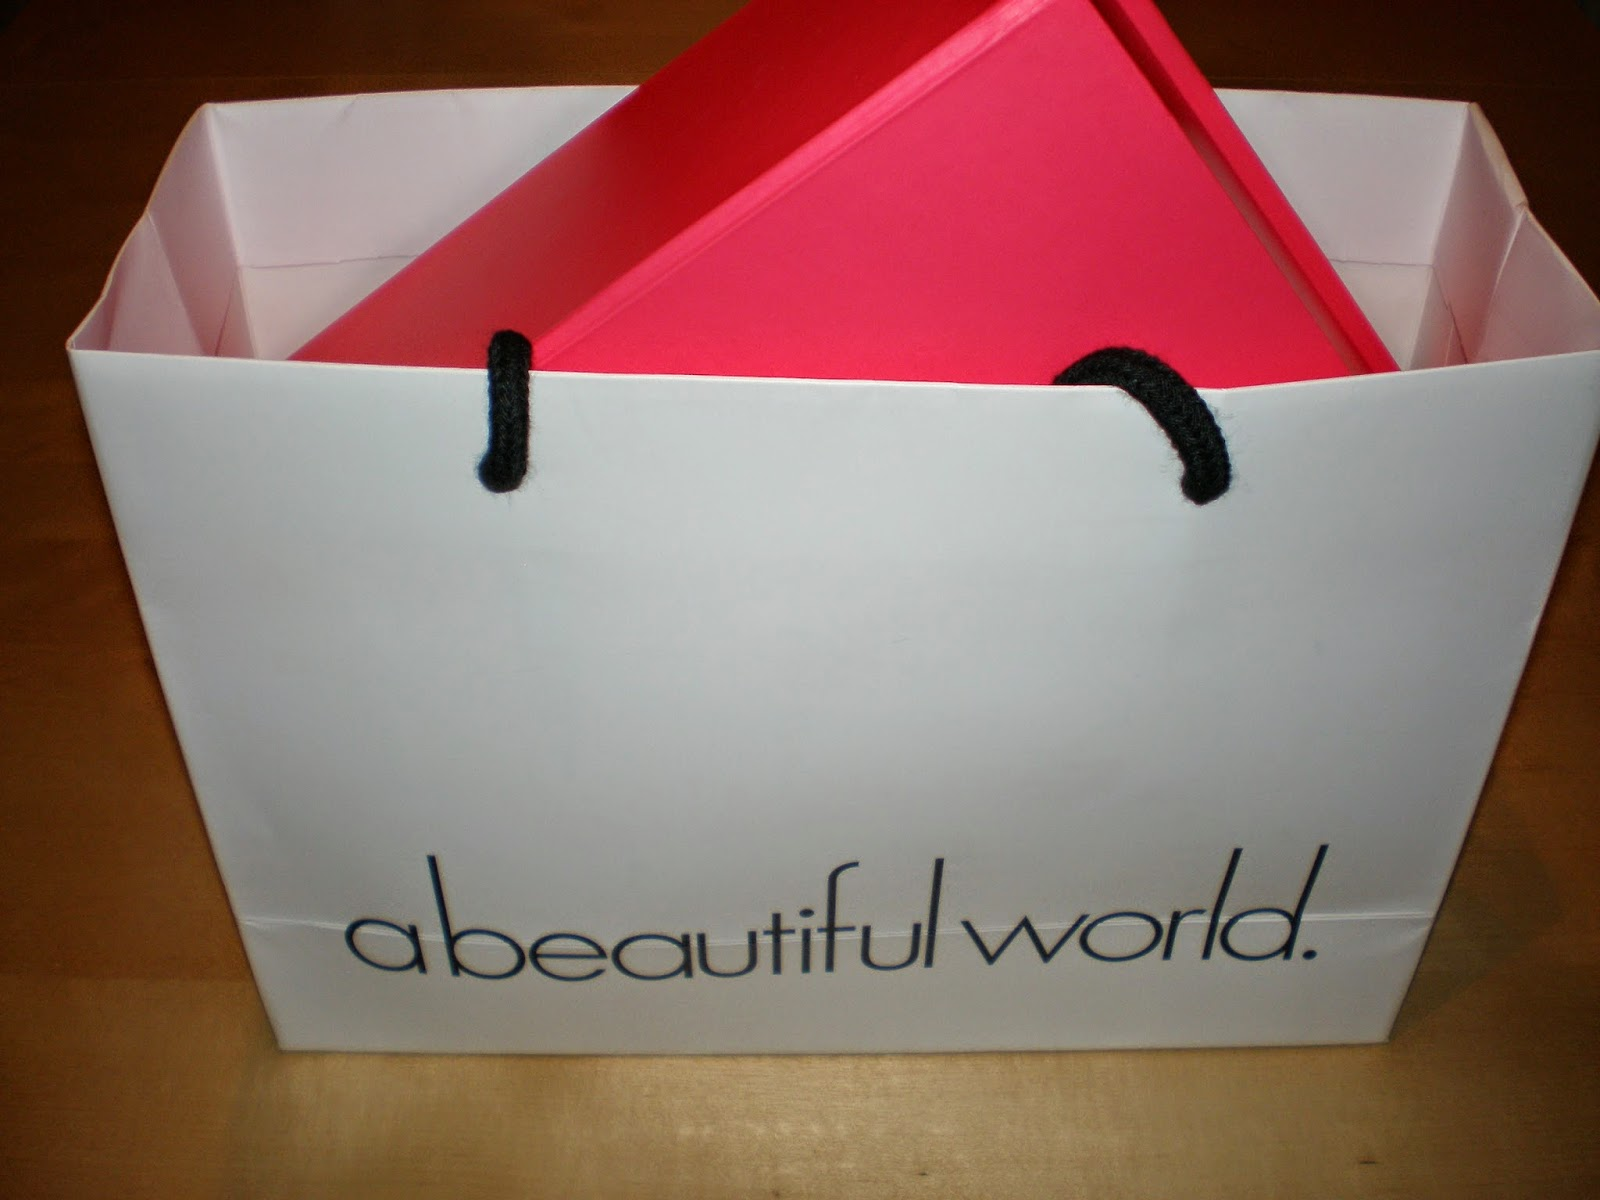 Abeautiful world beauty box